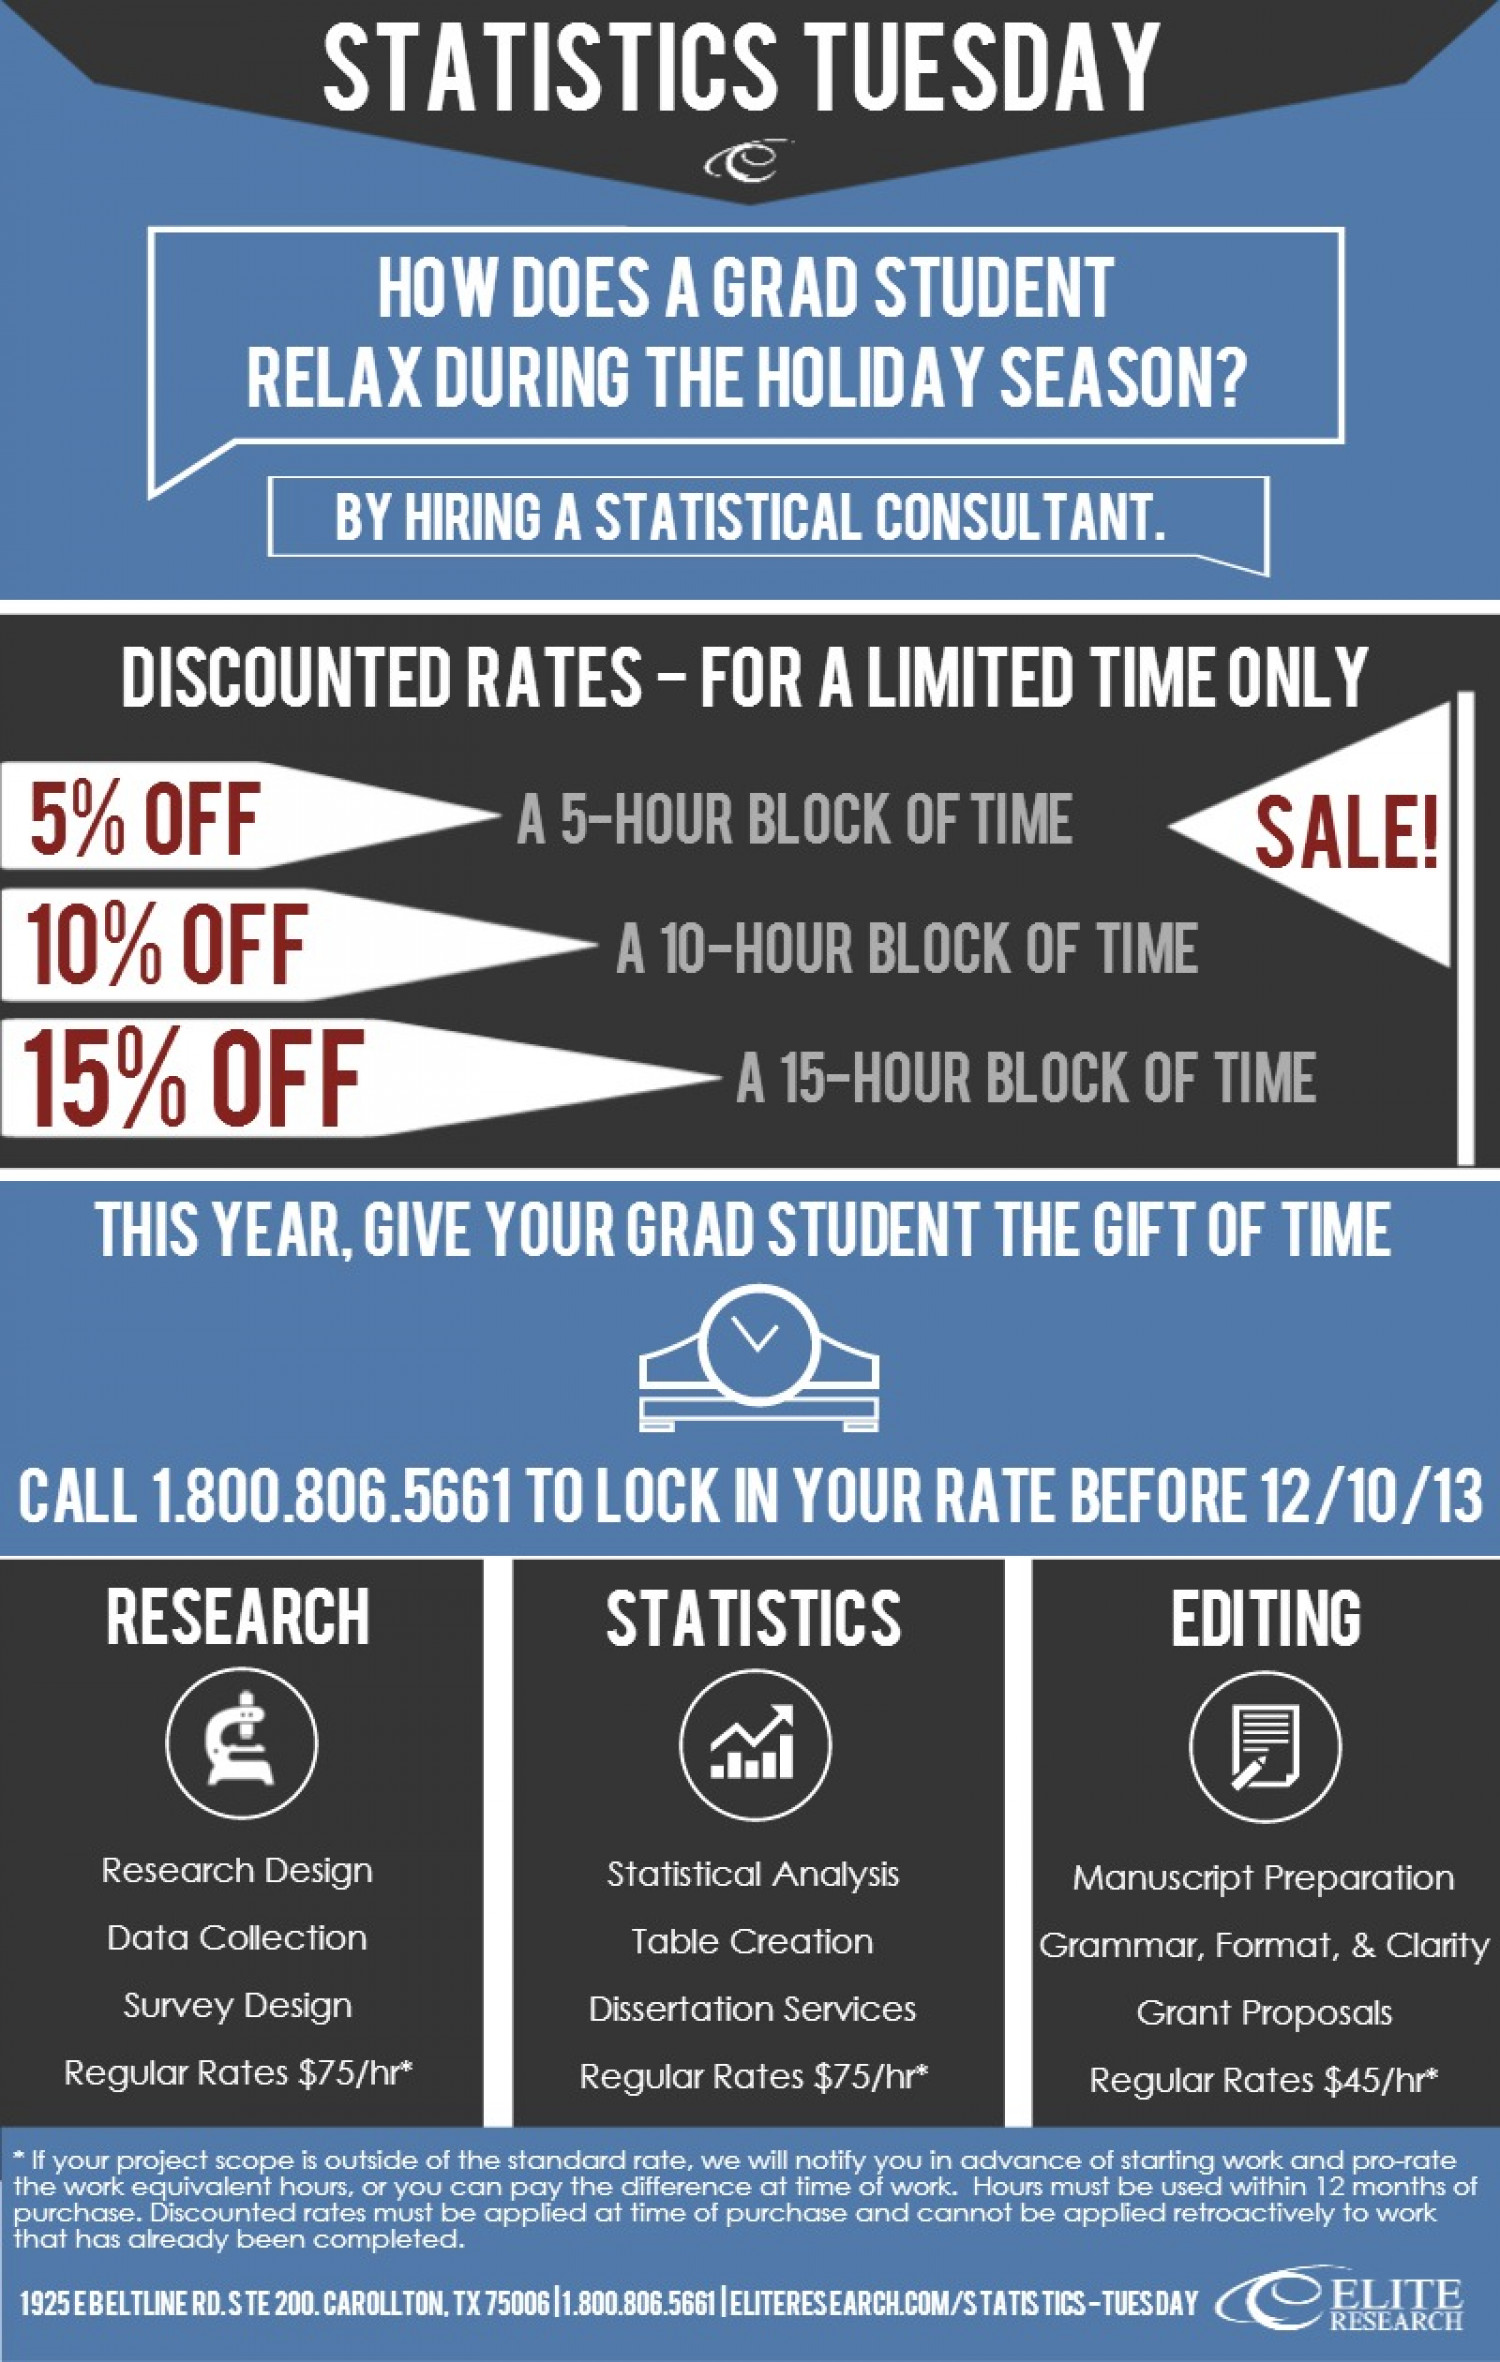 Statistics Tuesday Infographic